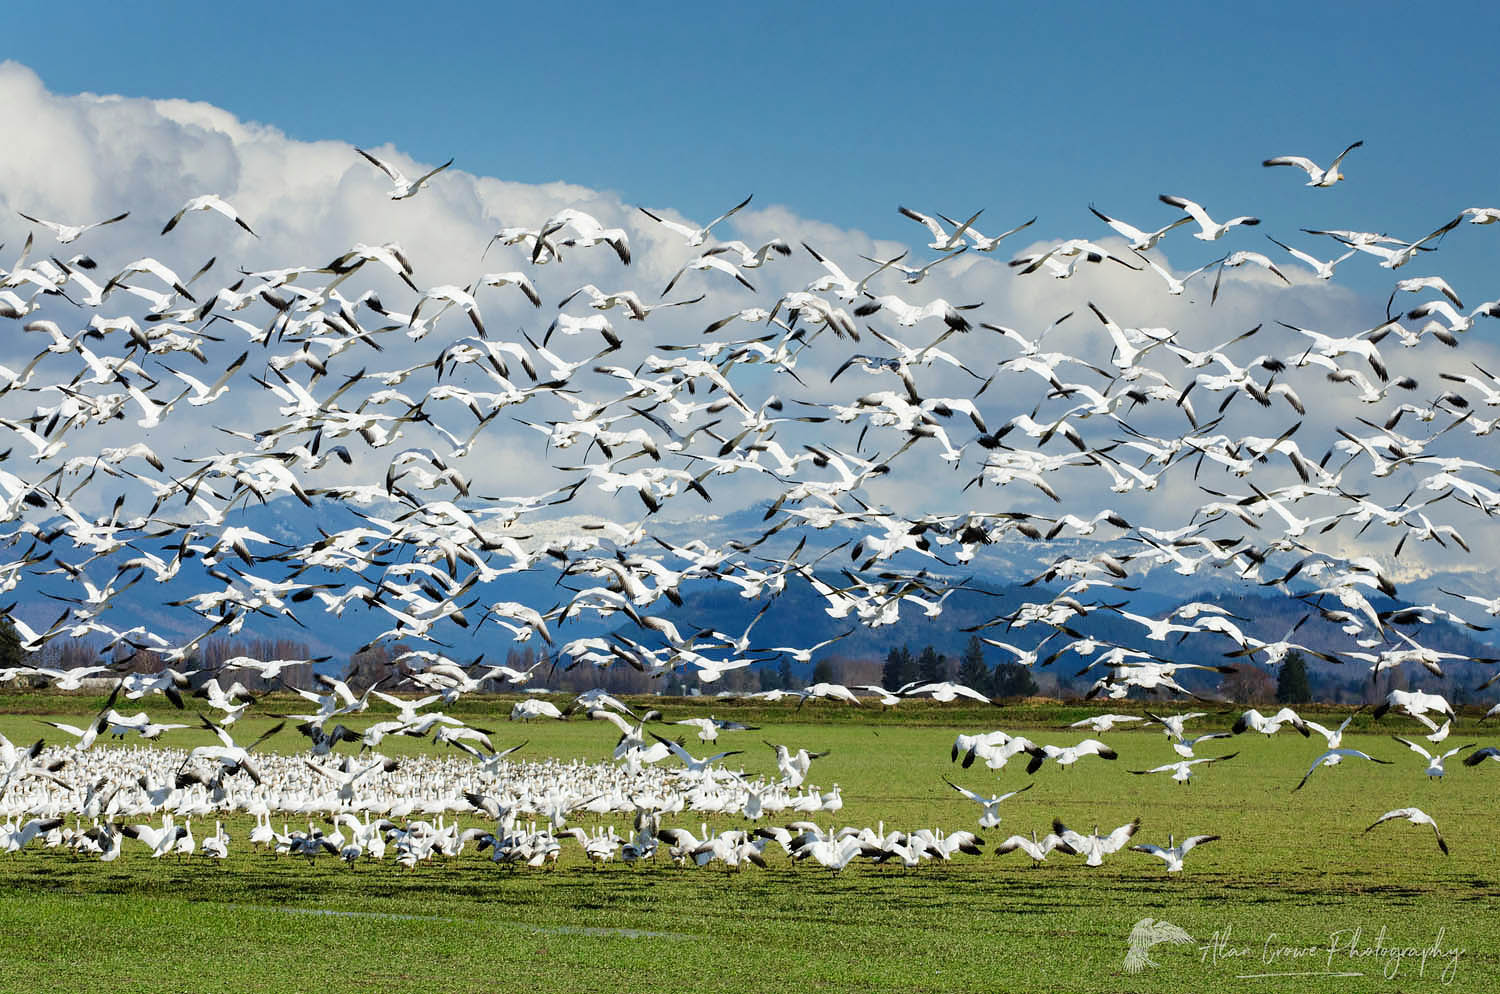 Snow Geese Skagit Valley Washington